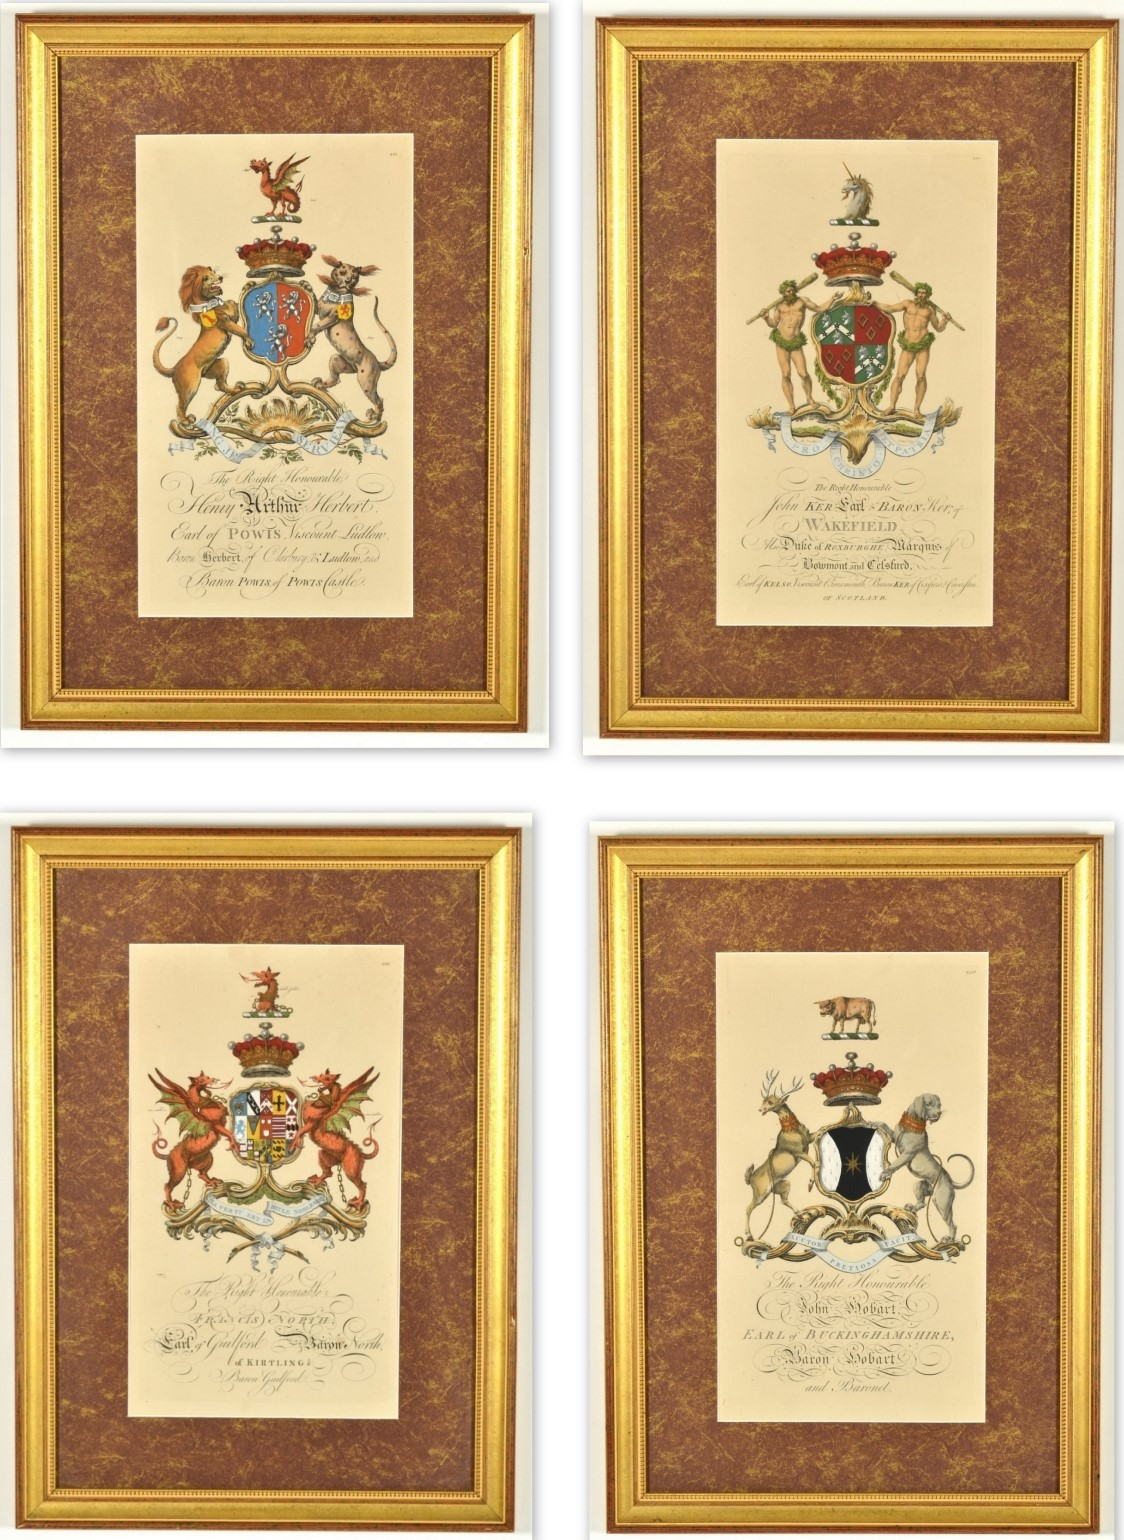 Set of Four Hand Colored Armorial Engravings, c. 1764